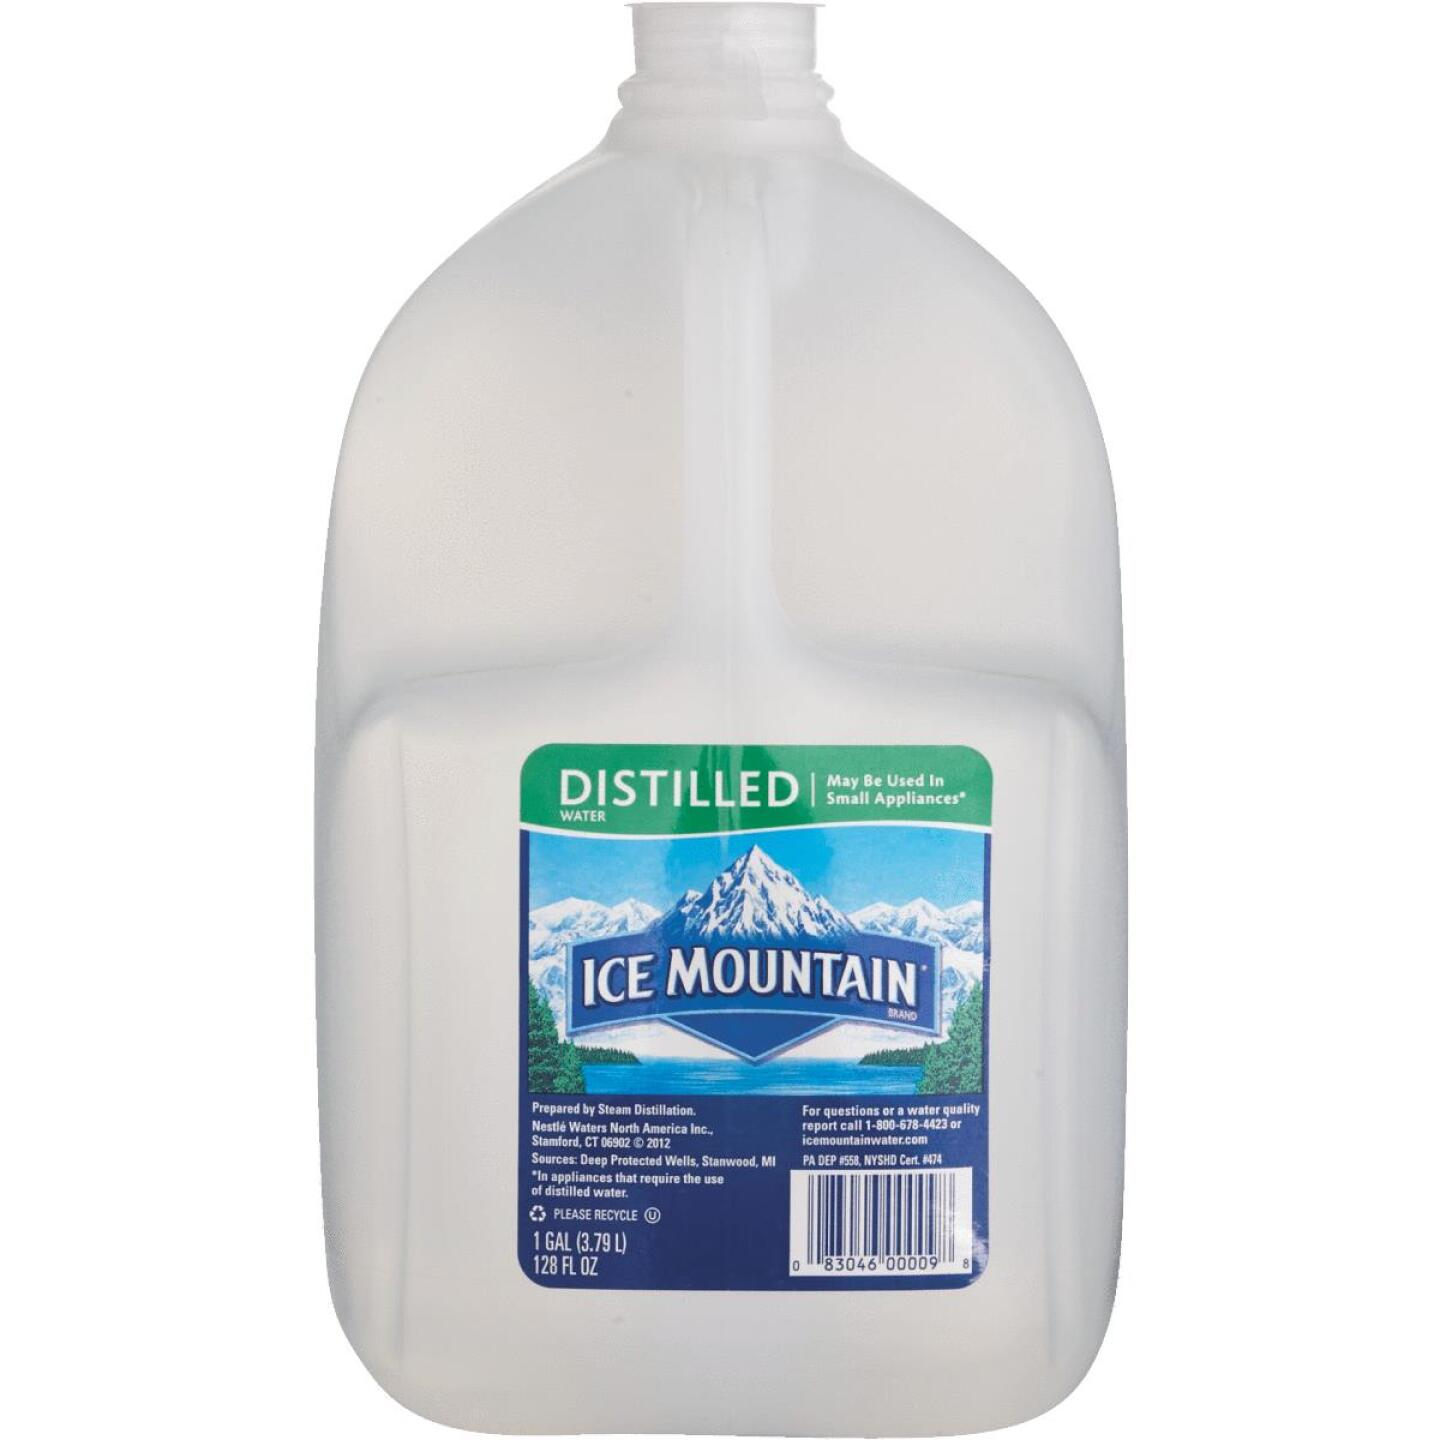 Ice Mountain 1 Gal. Distilled Water Image 3